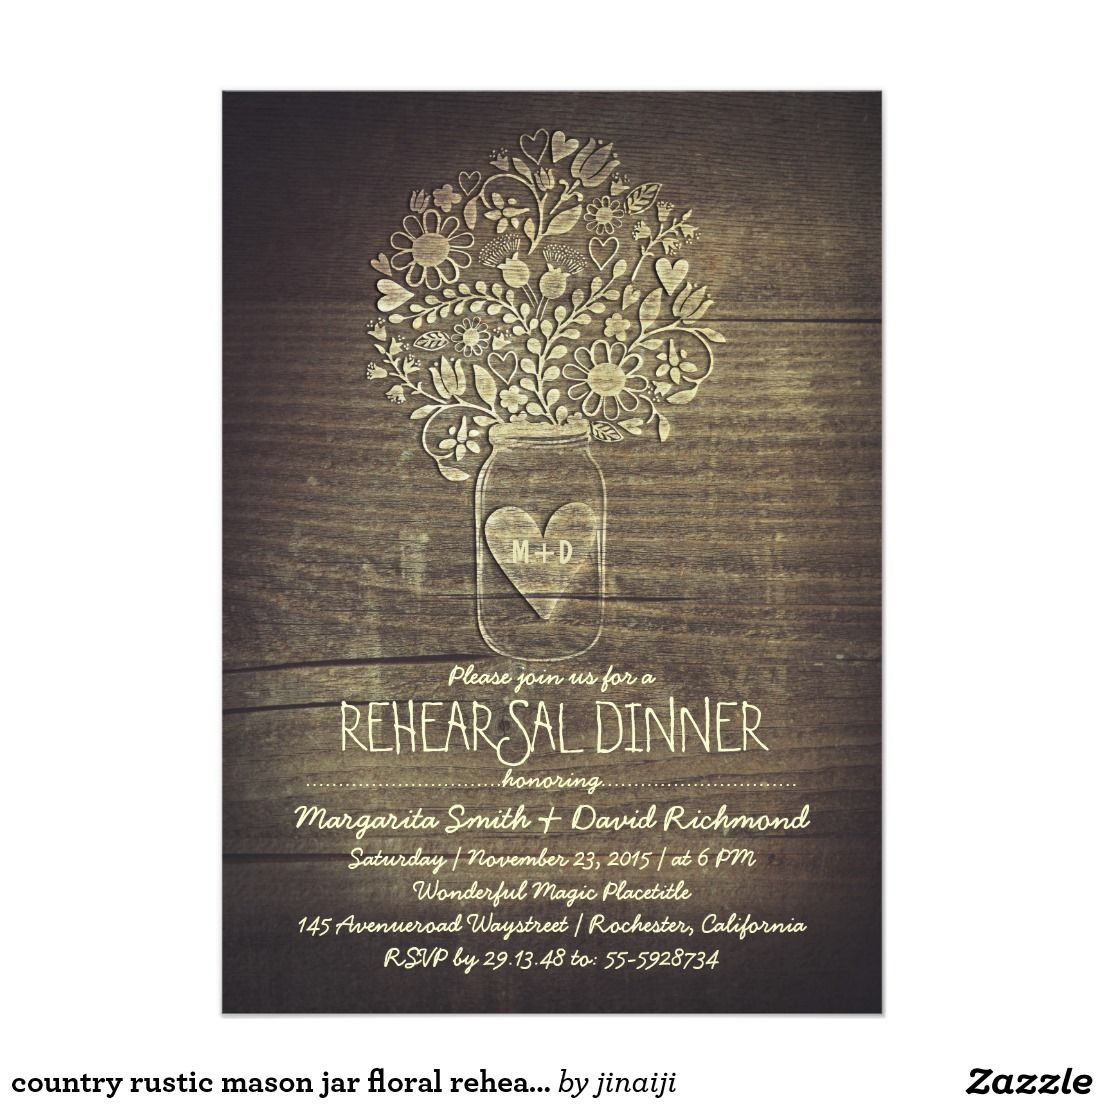 country rustic mason jar floral rehearsal dinner